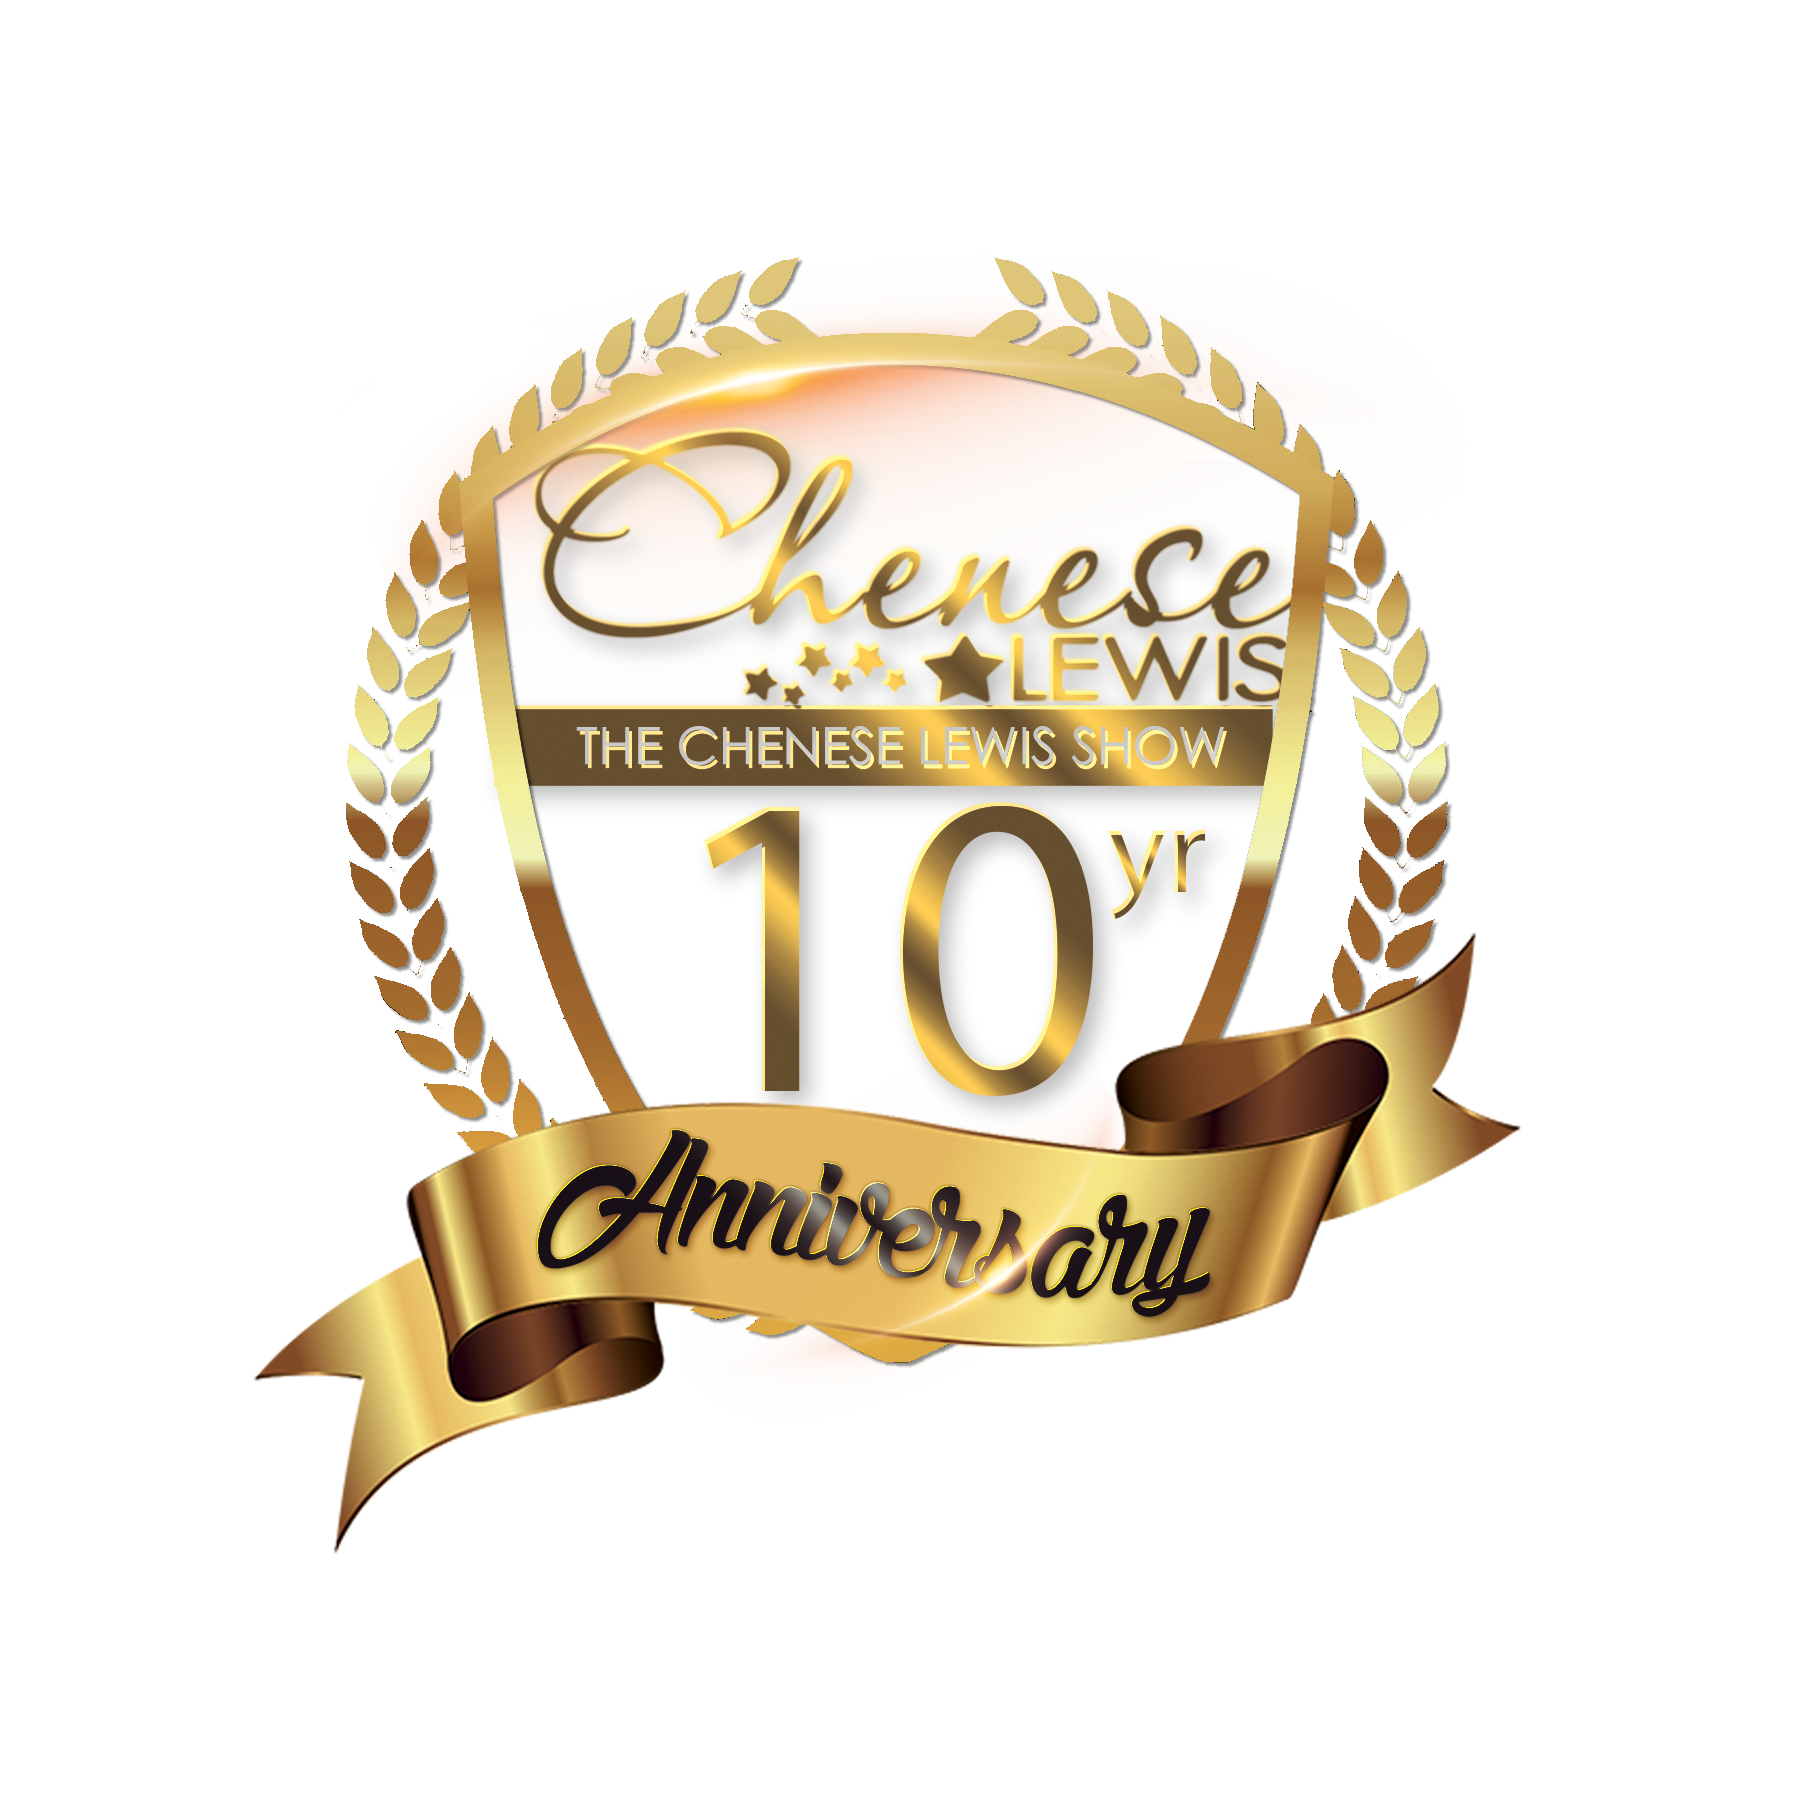 The Chenese Lewis Show Celebrates 10 Year Anniversary!